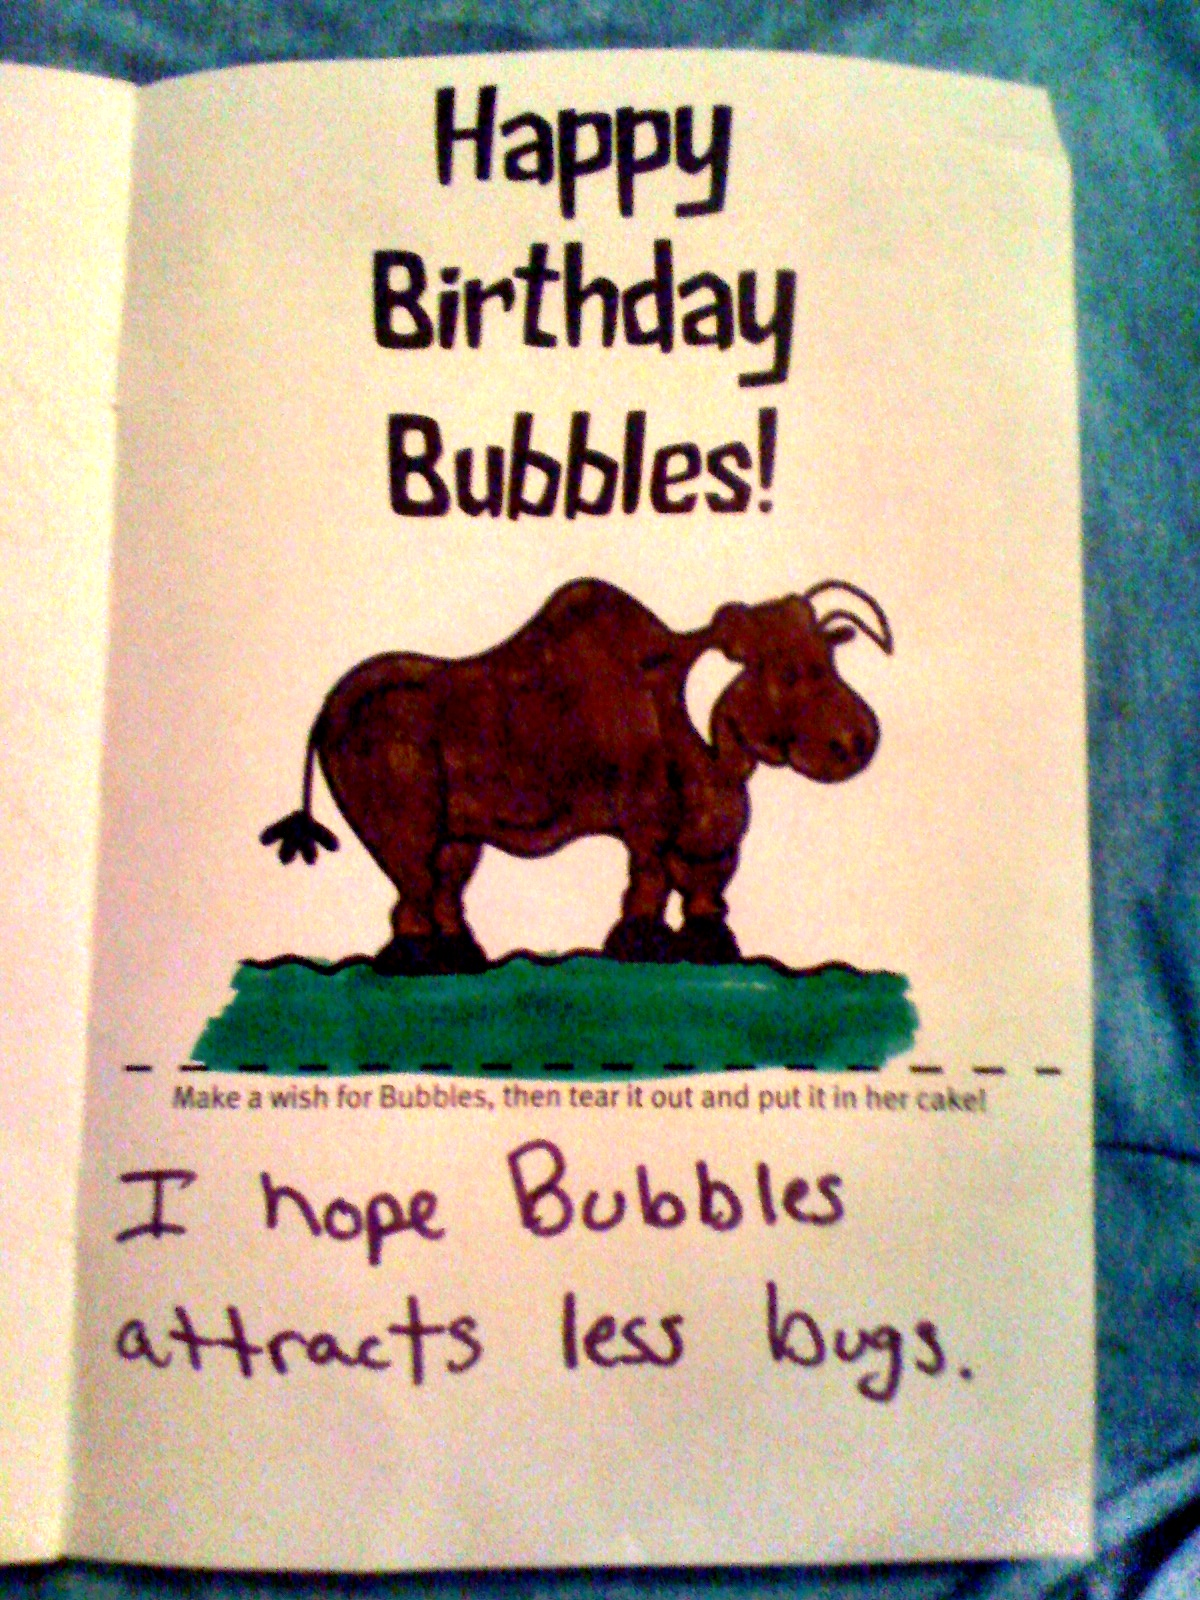 """And now a selection of some of the best of Bubbles' birthday wishes…   Let's start out with this one. """"I hope Bubbles attracts less bugs.""""   Who wouldn't want to attract less bugs for her birthday?"""